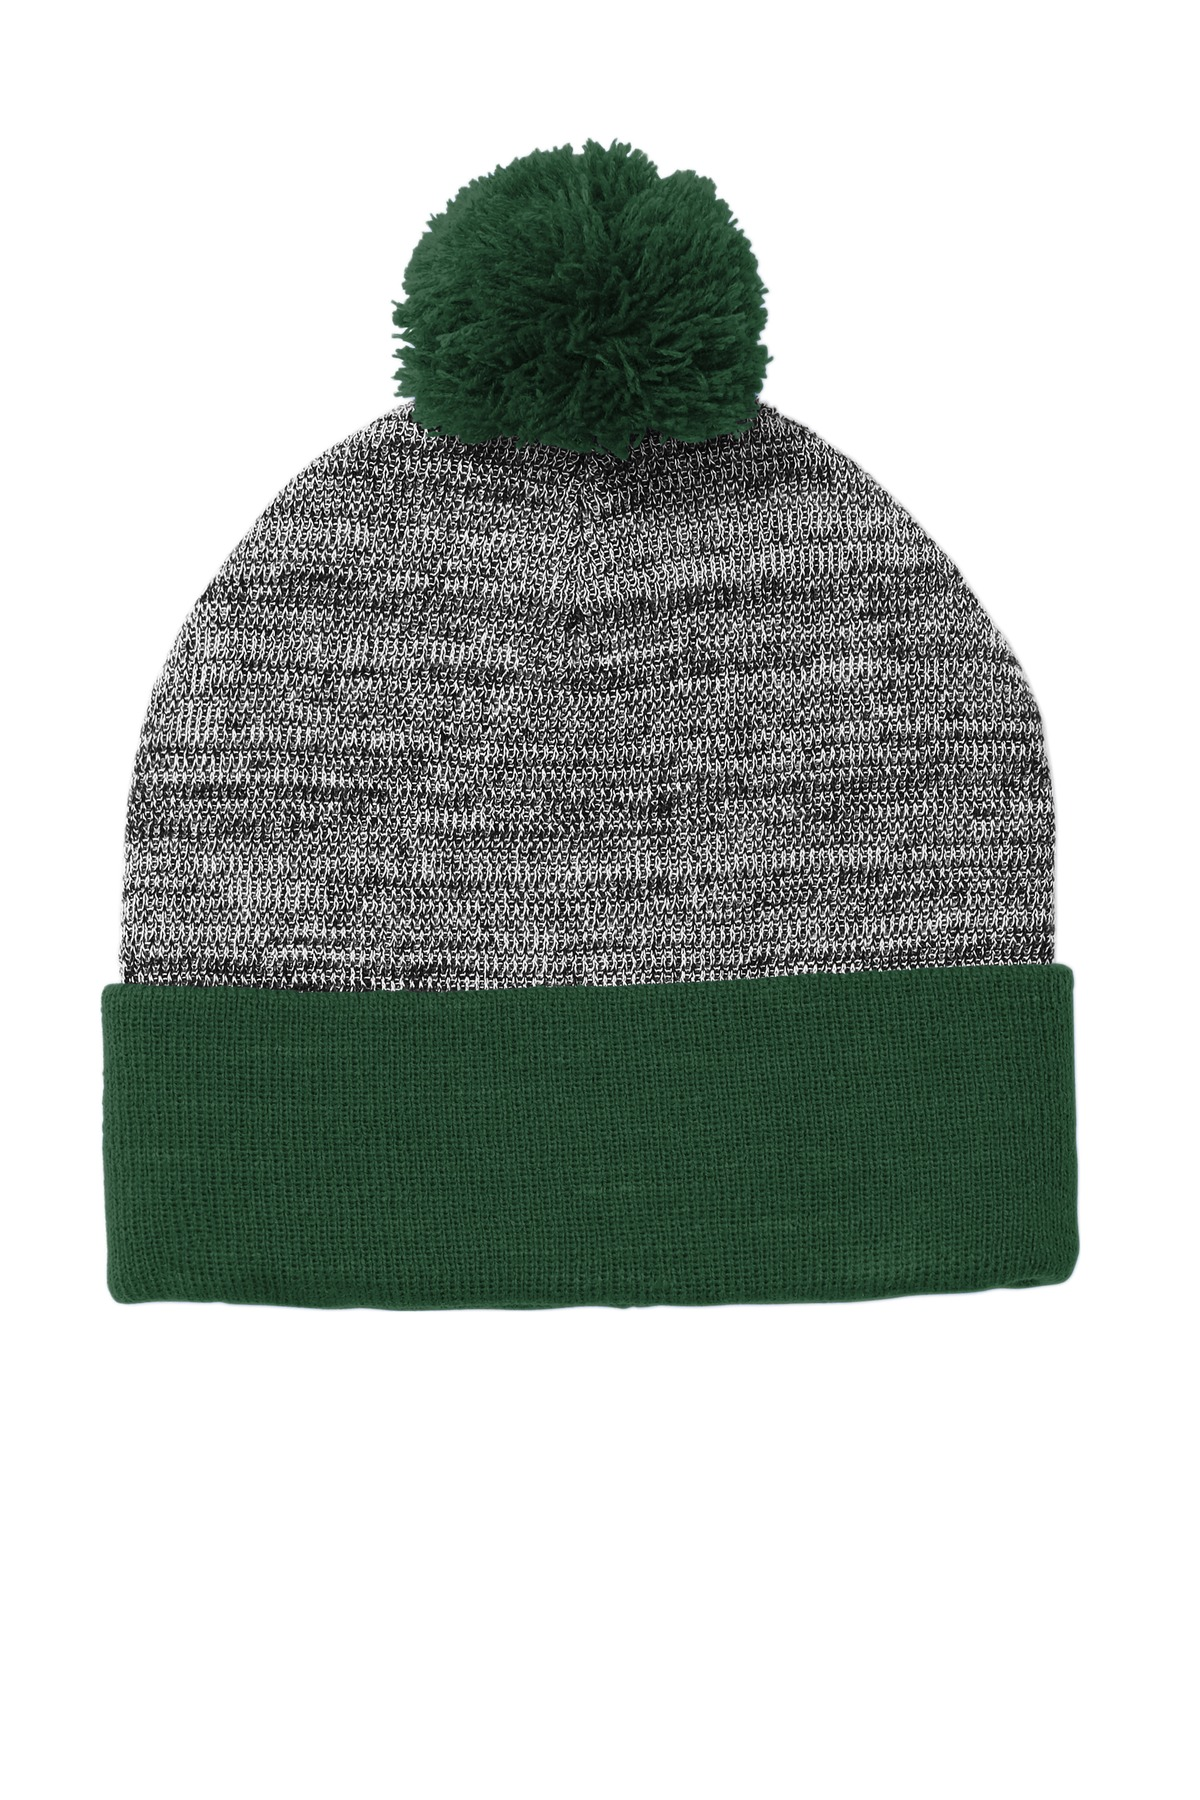 Sport-Tek  ®  Heather Pom Pom Beanie STC41 - Forest Green/ Grey Heather